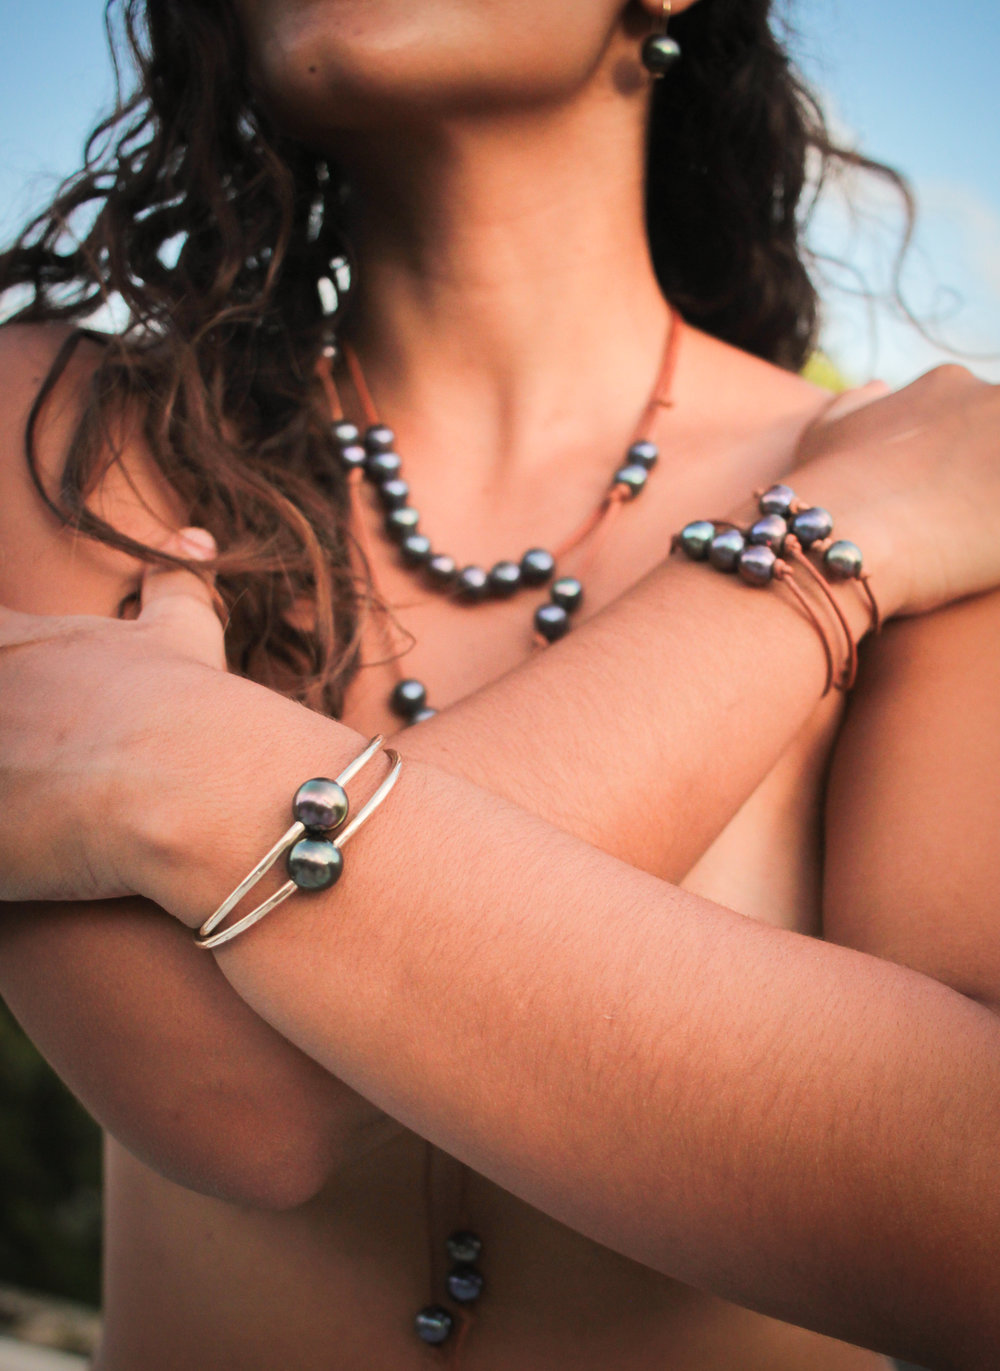 Handmade bohochic luxury pearl and silver jewellery from the Caribbean islands new to Ireland in time for Christmas!